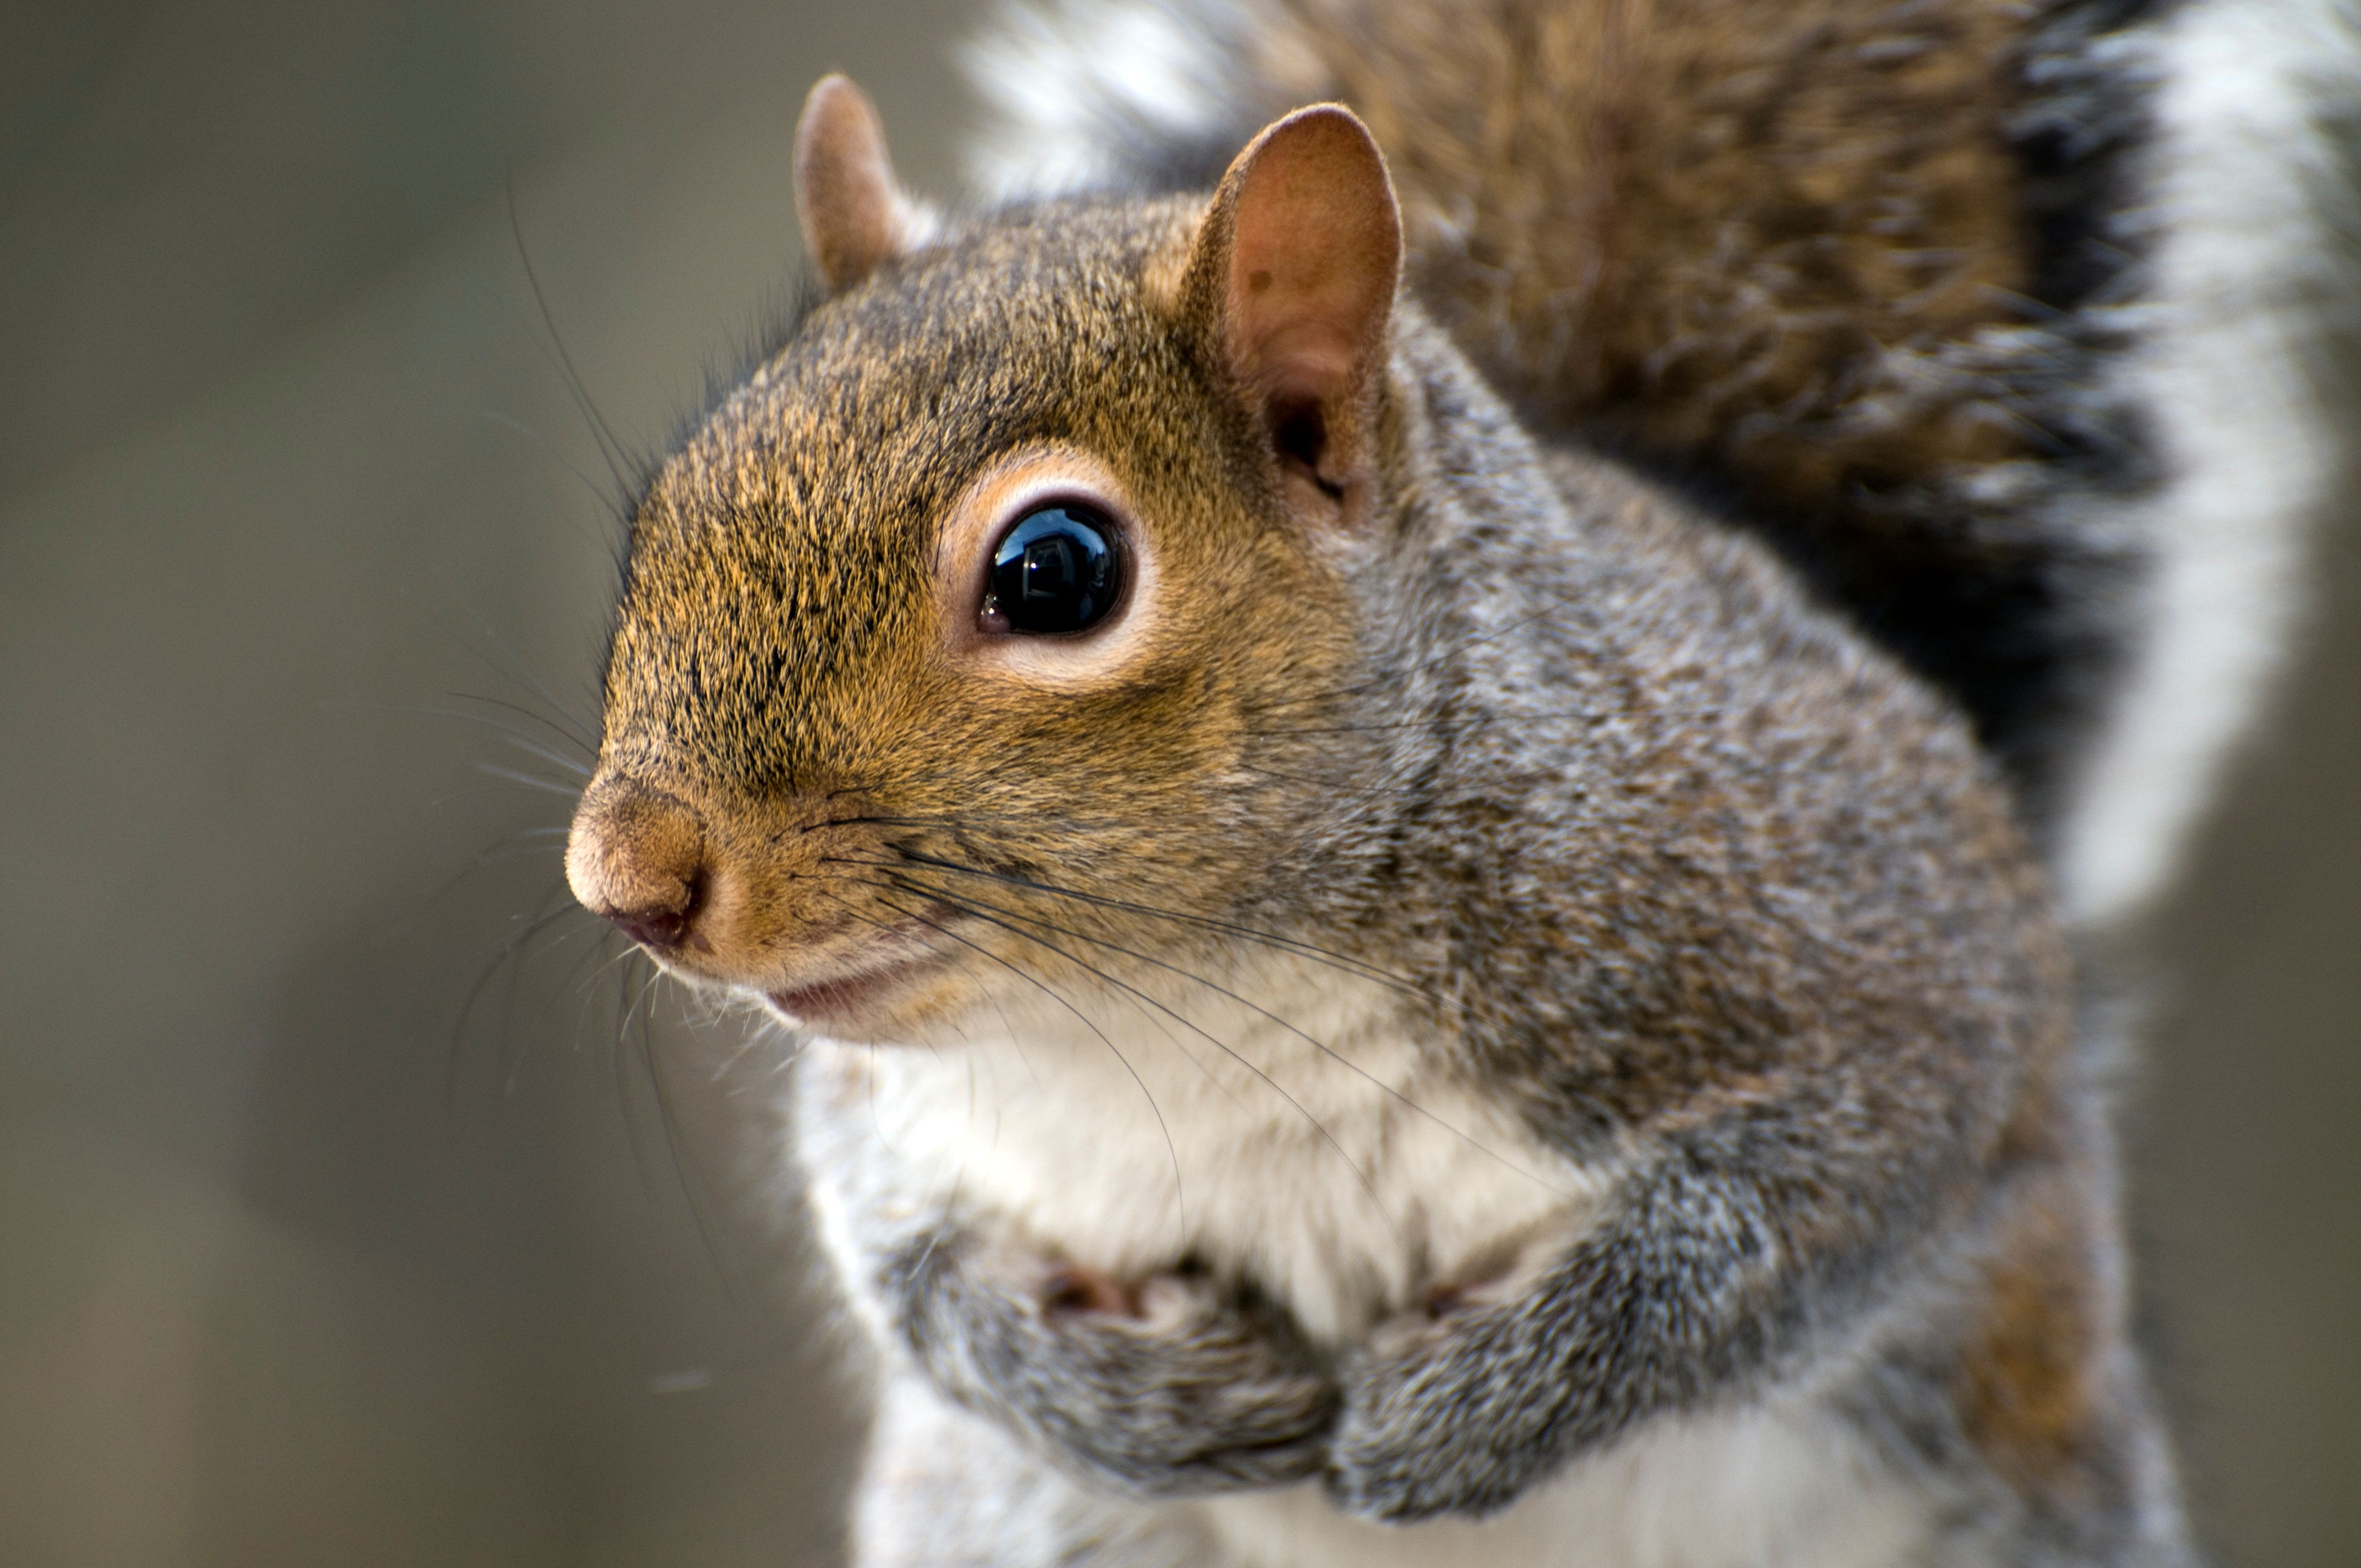 Closeup of an  Eastern Gray Squirrel (Sciurus carolinensis).Other images in this series: